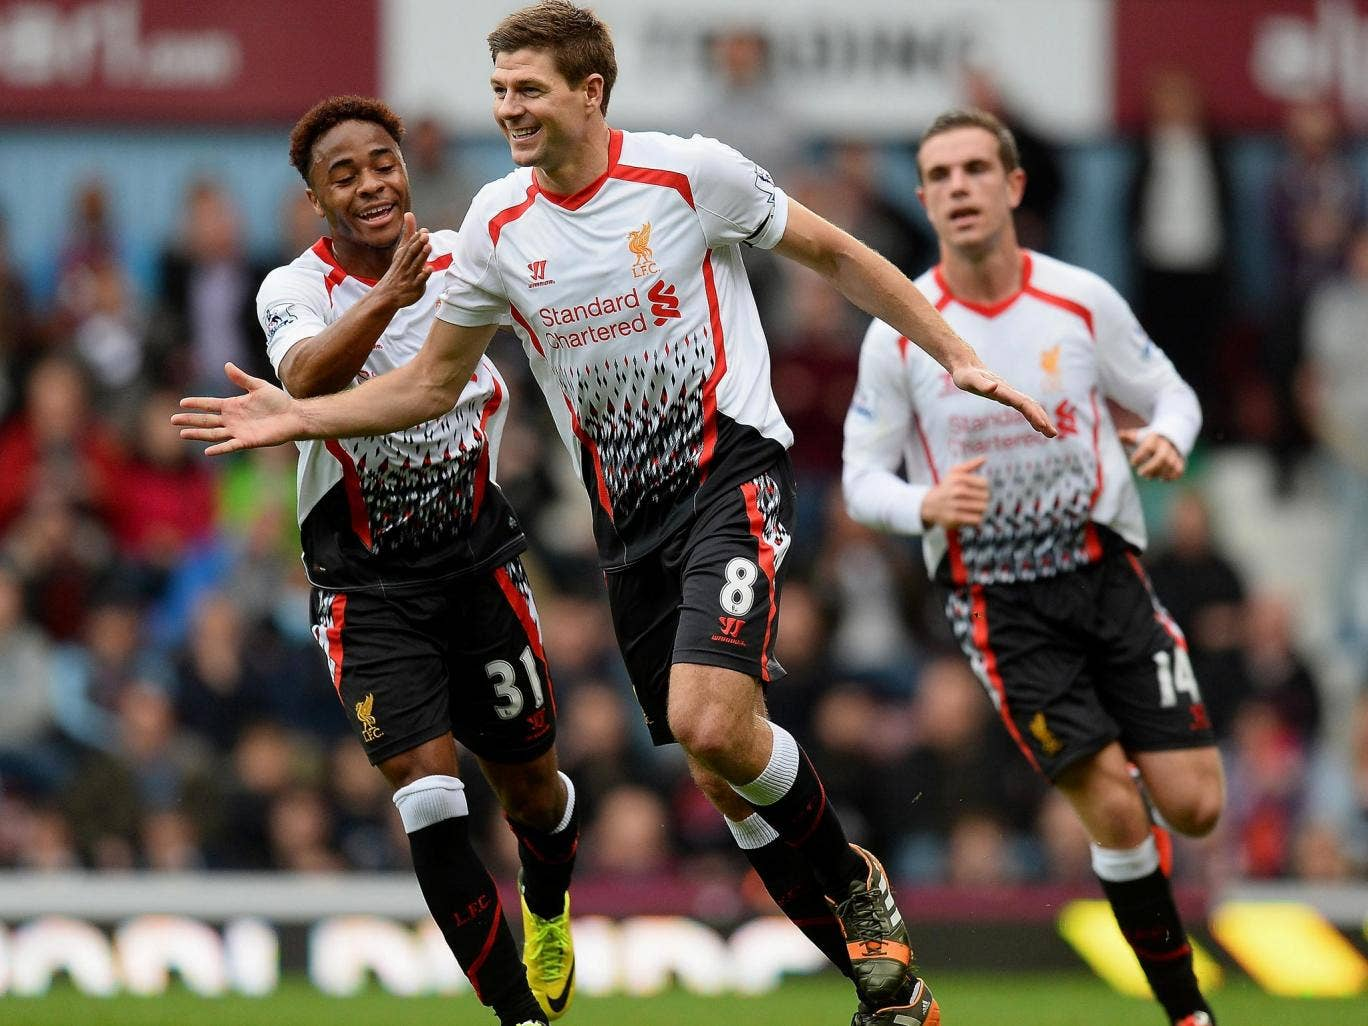 Steven Gerrard celebrates scoring for Liverpool in the victory over West Ham